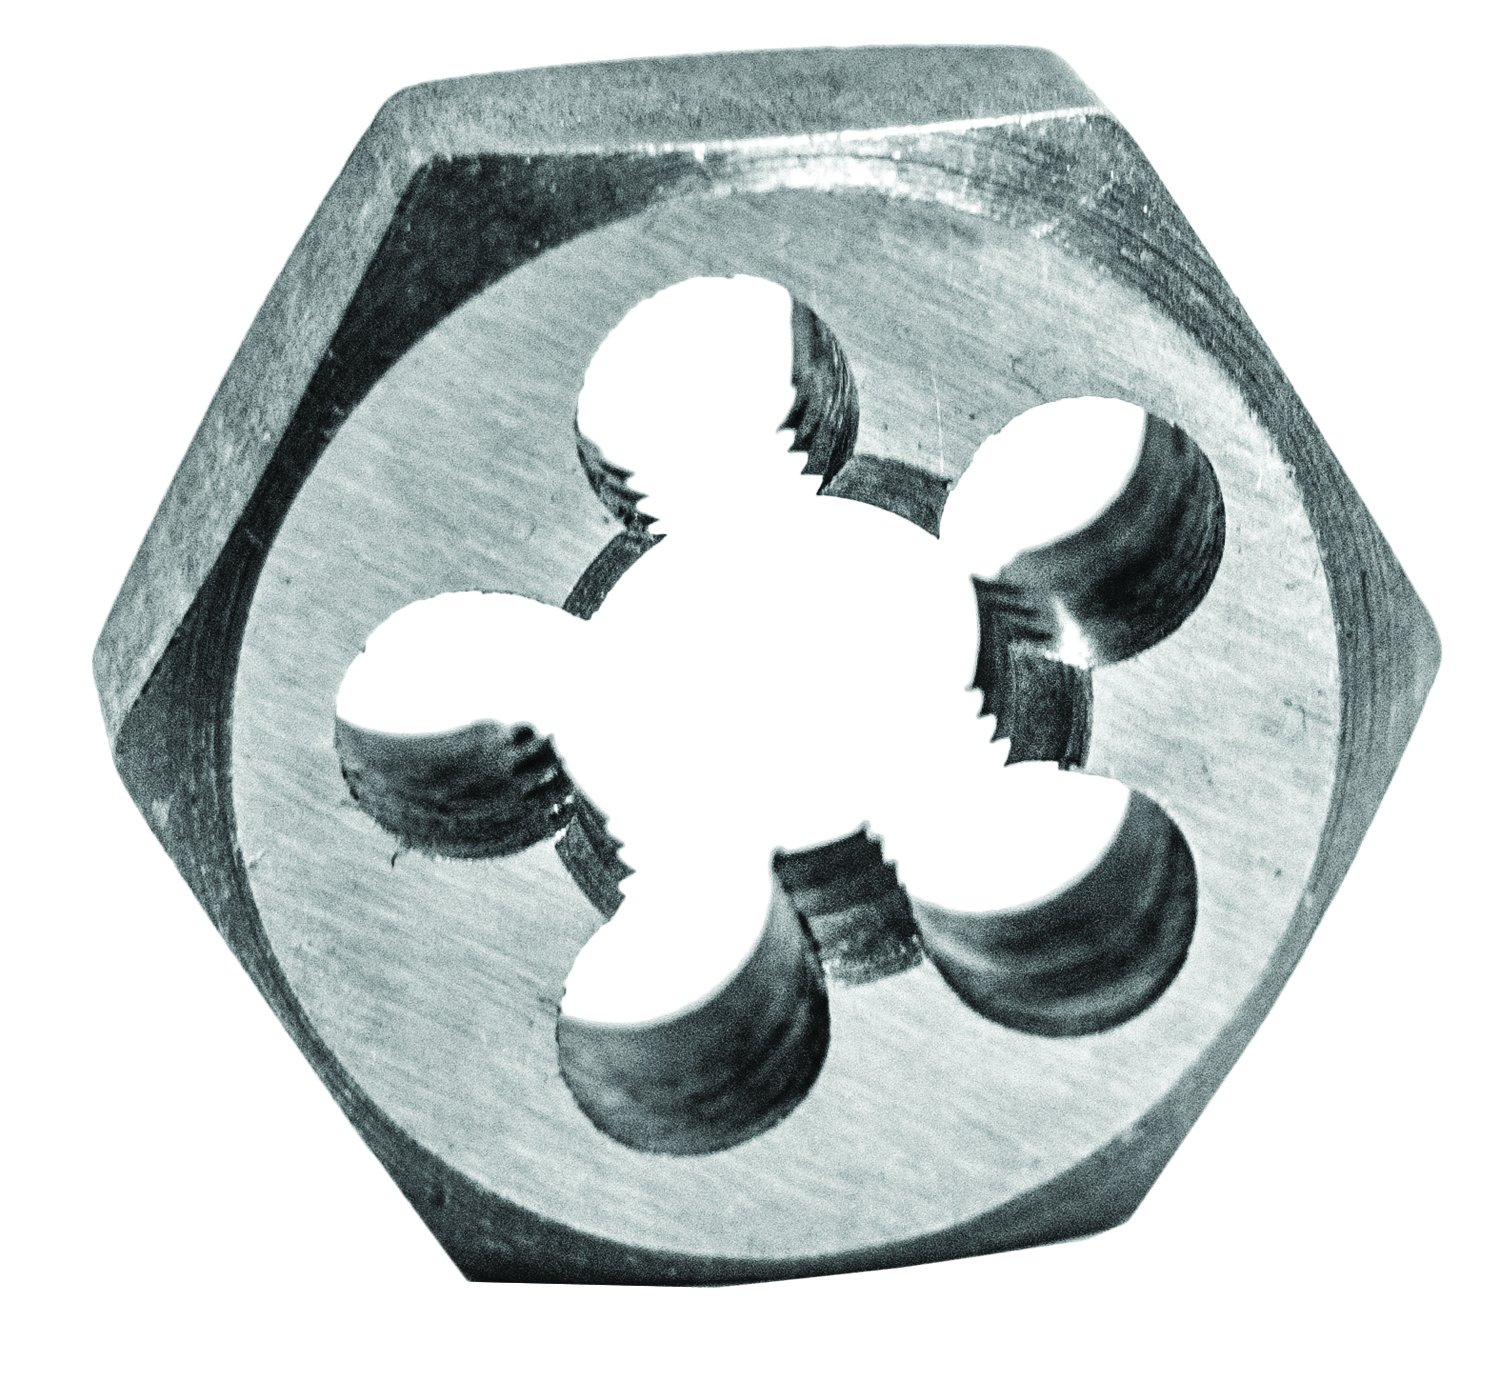 Century Drill & Tool 95620 High Carbon Steel Metric Hexagon Die, 14x1.25 by Century Drill & Tool